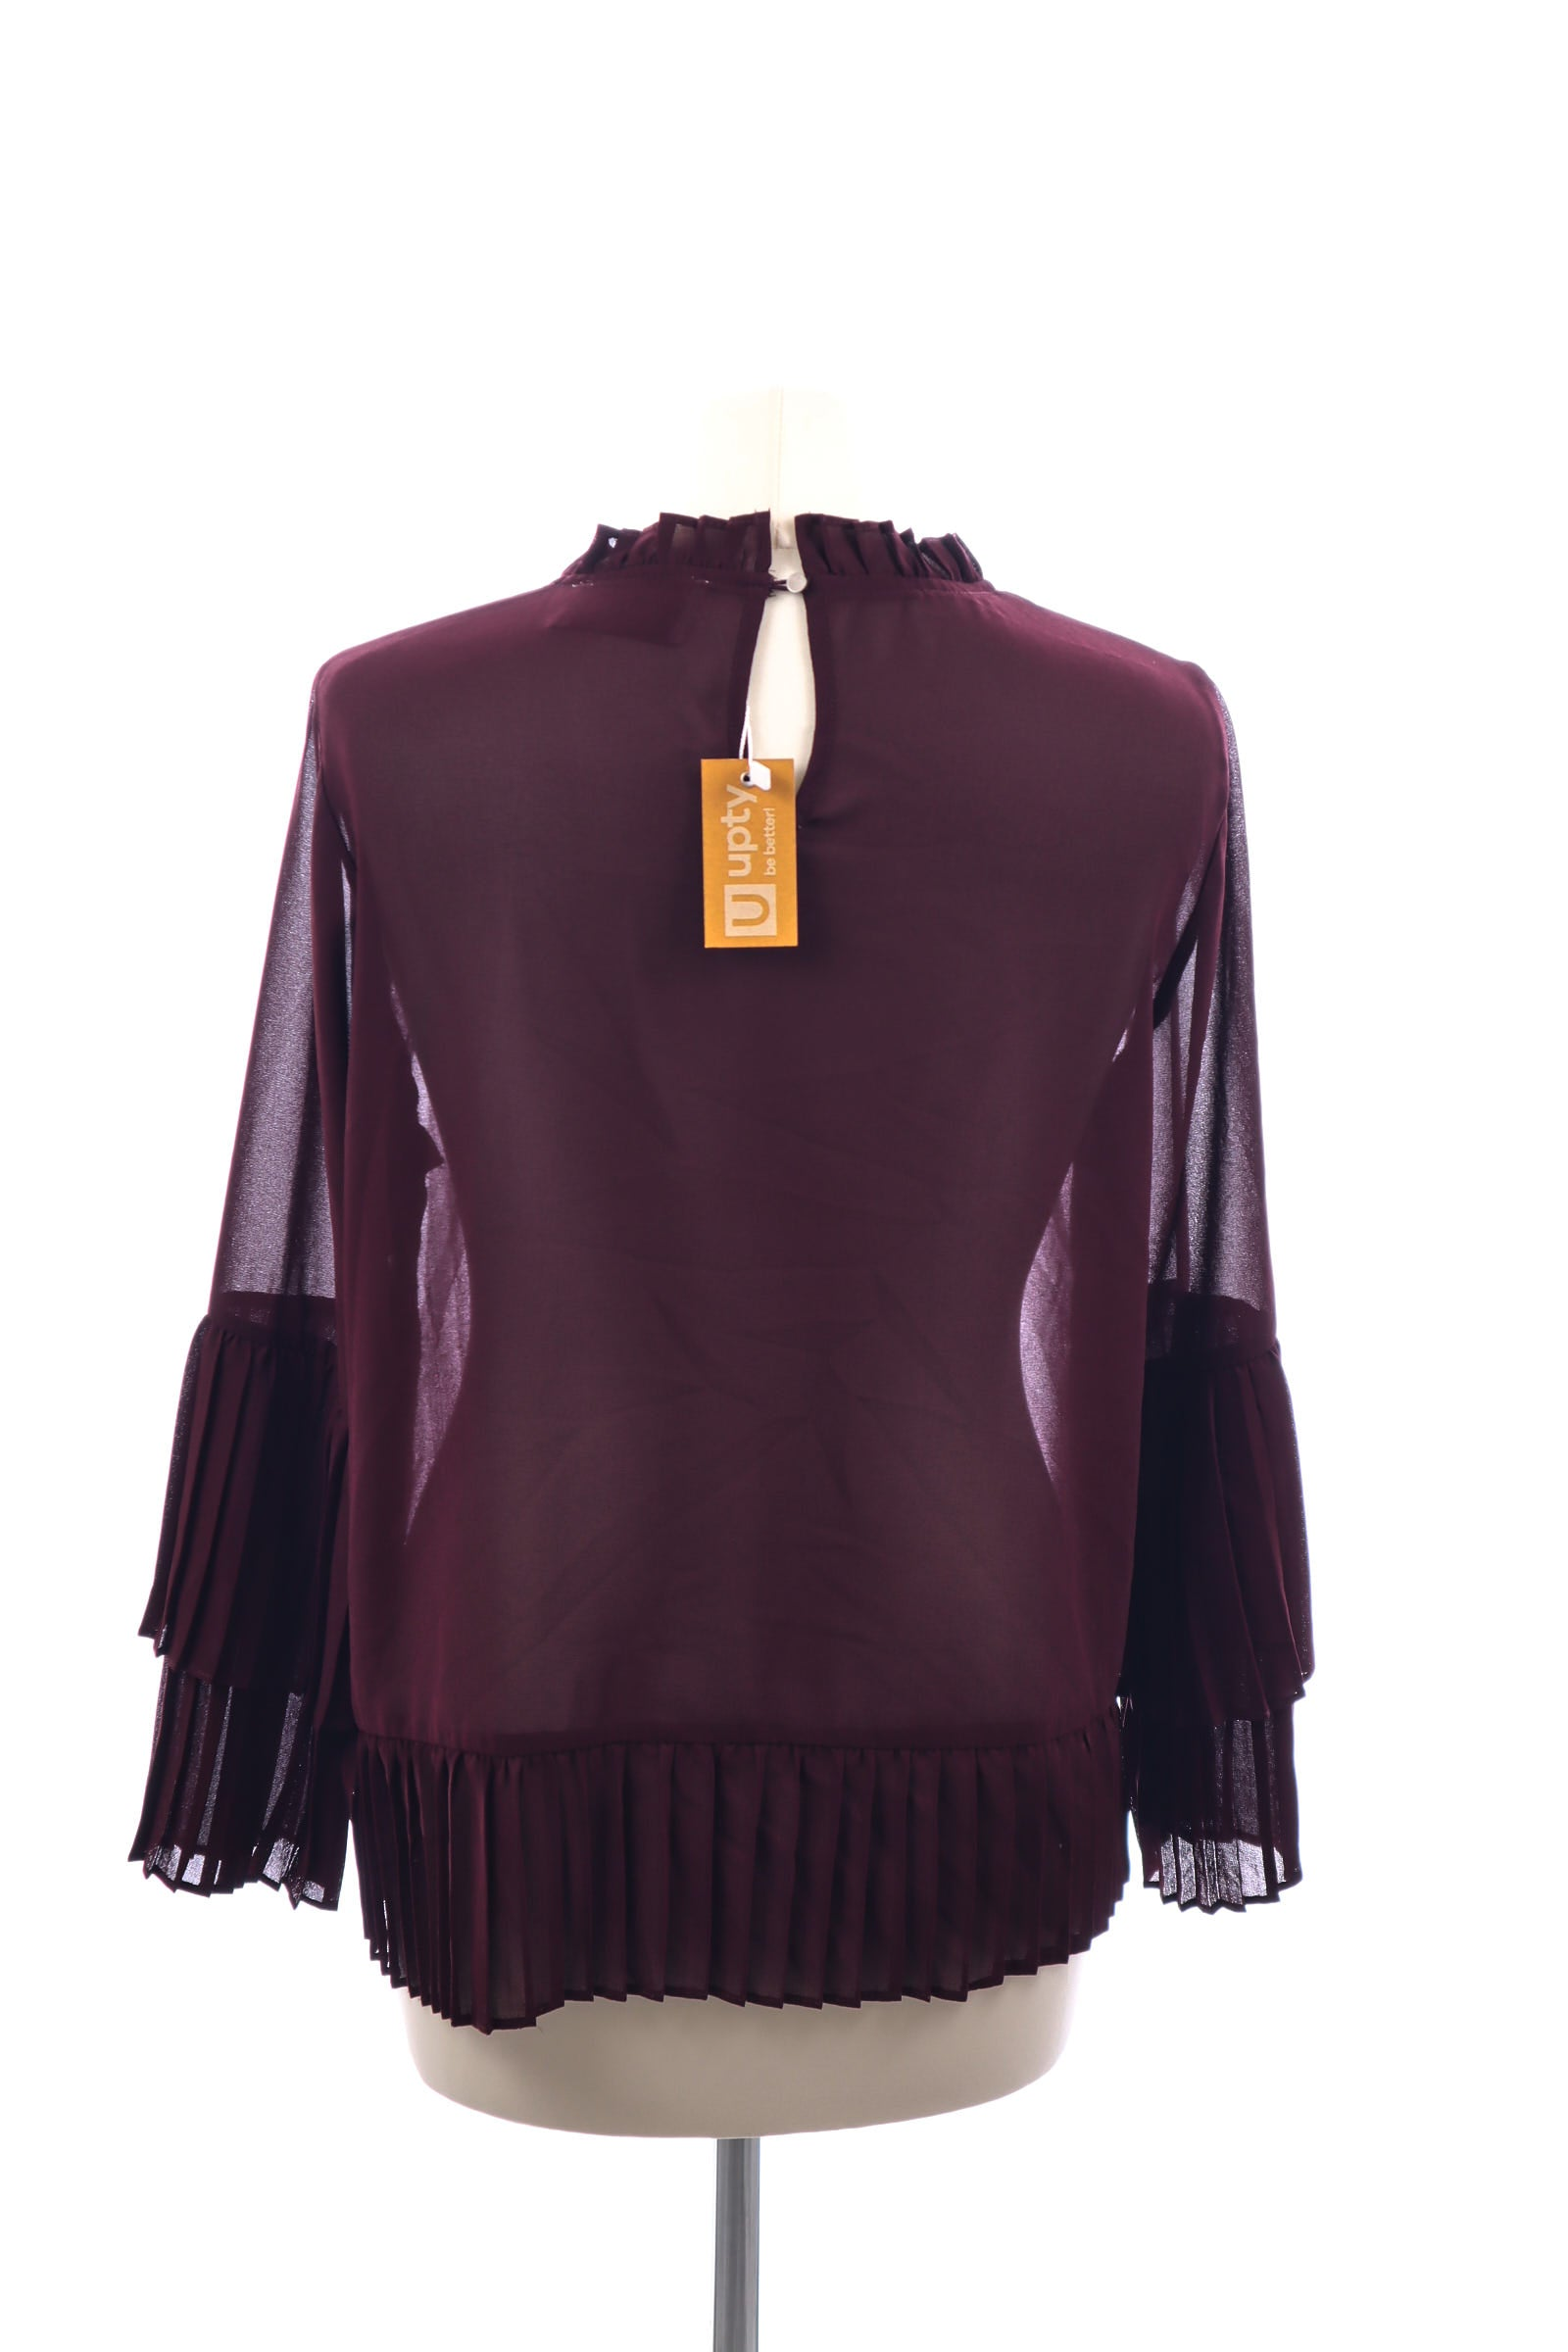 Neo Noir Burgundy Top